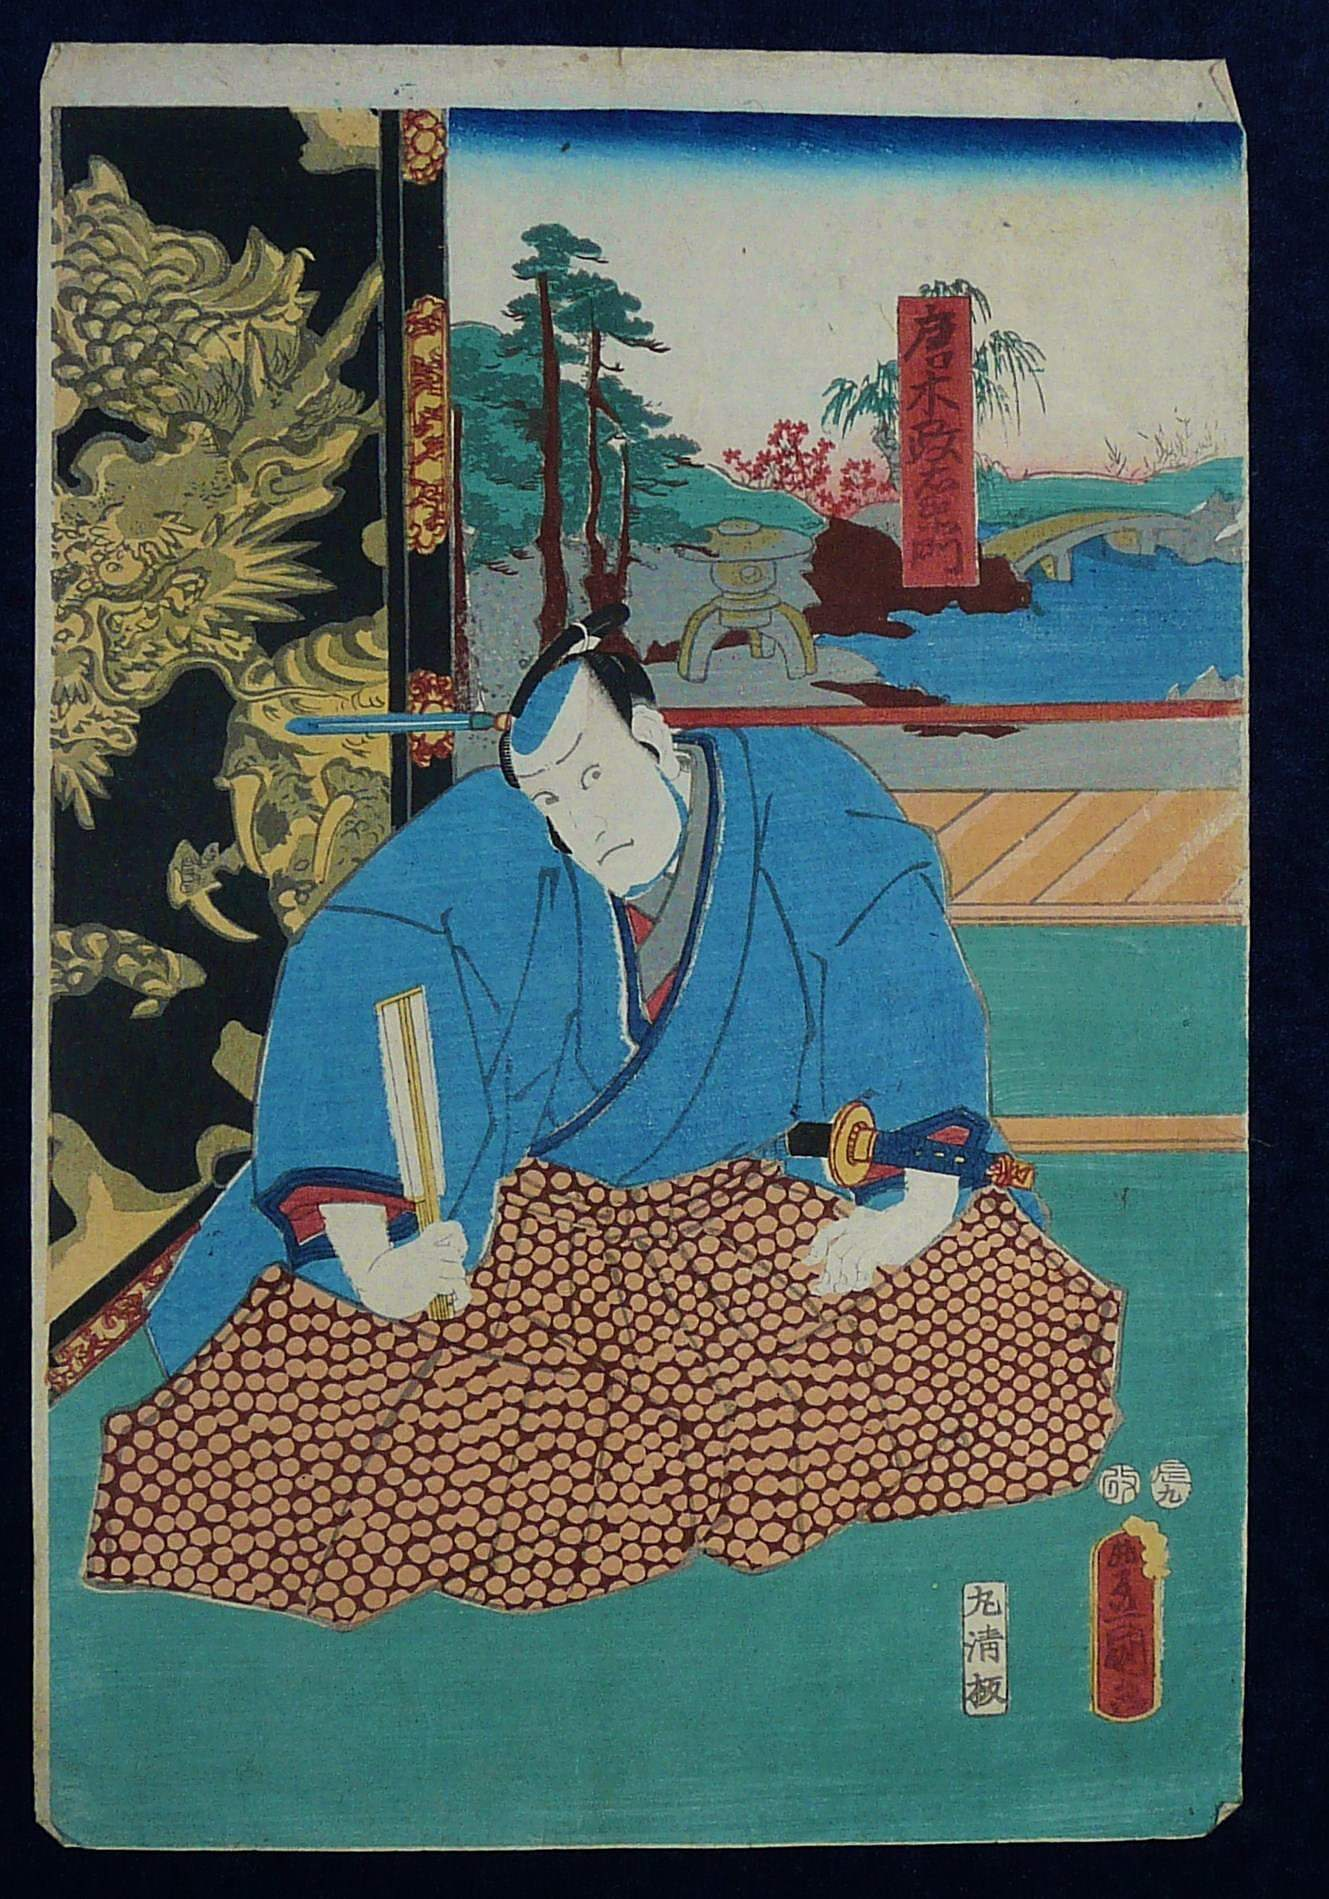 UTAGAWA KUNISADA: #P3862 SAMURAI MEDITATING BY A DRAGON SCREEN 1853 to 1857